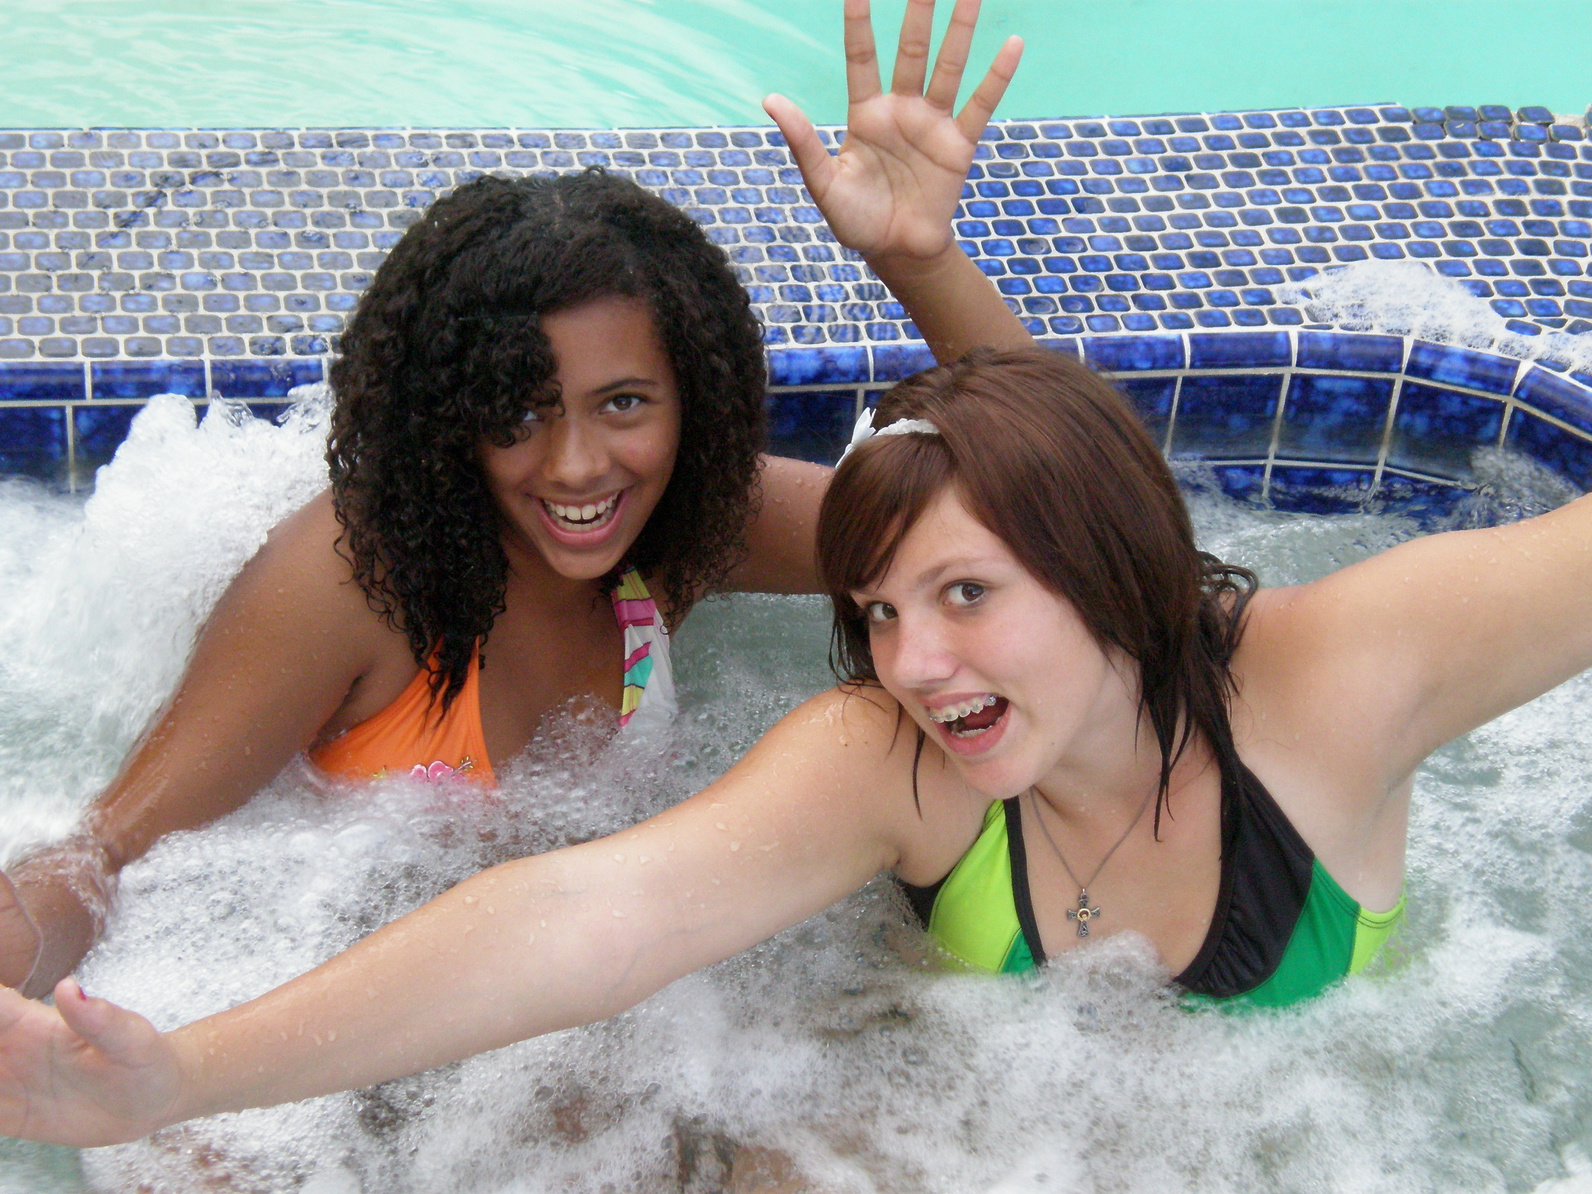 Conversation Games for Hot Tubs (Part 1)